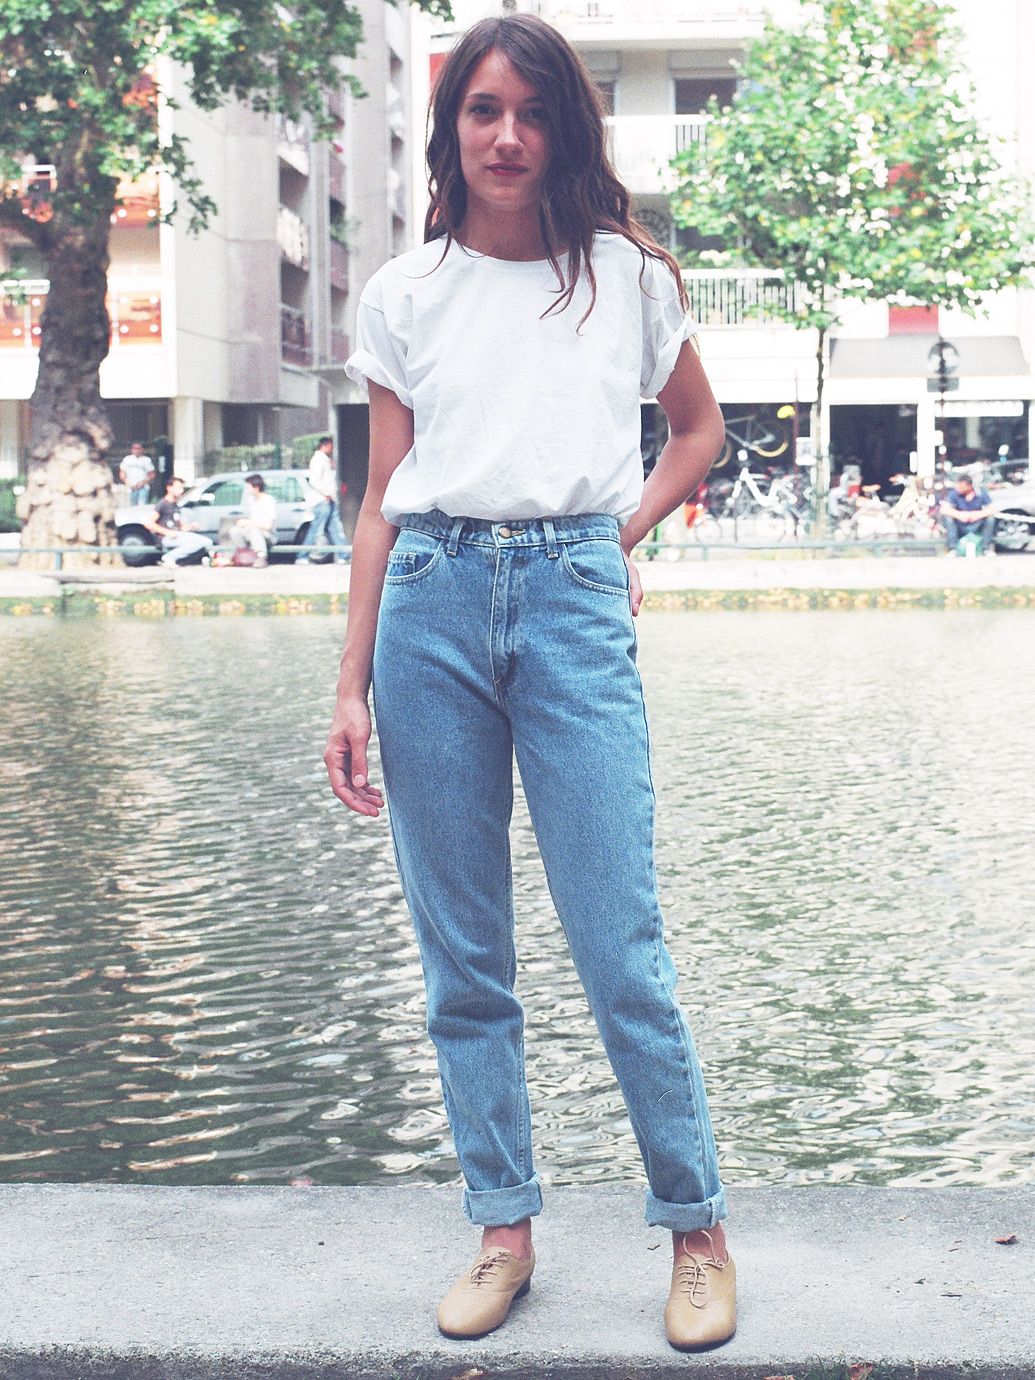 7bc8f83af9 Jean Shirt Outfits Tumblr - BCD Tofu House